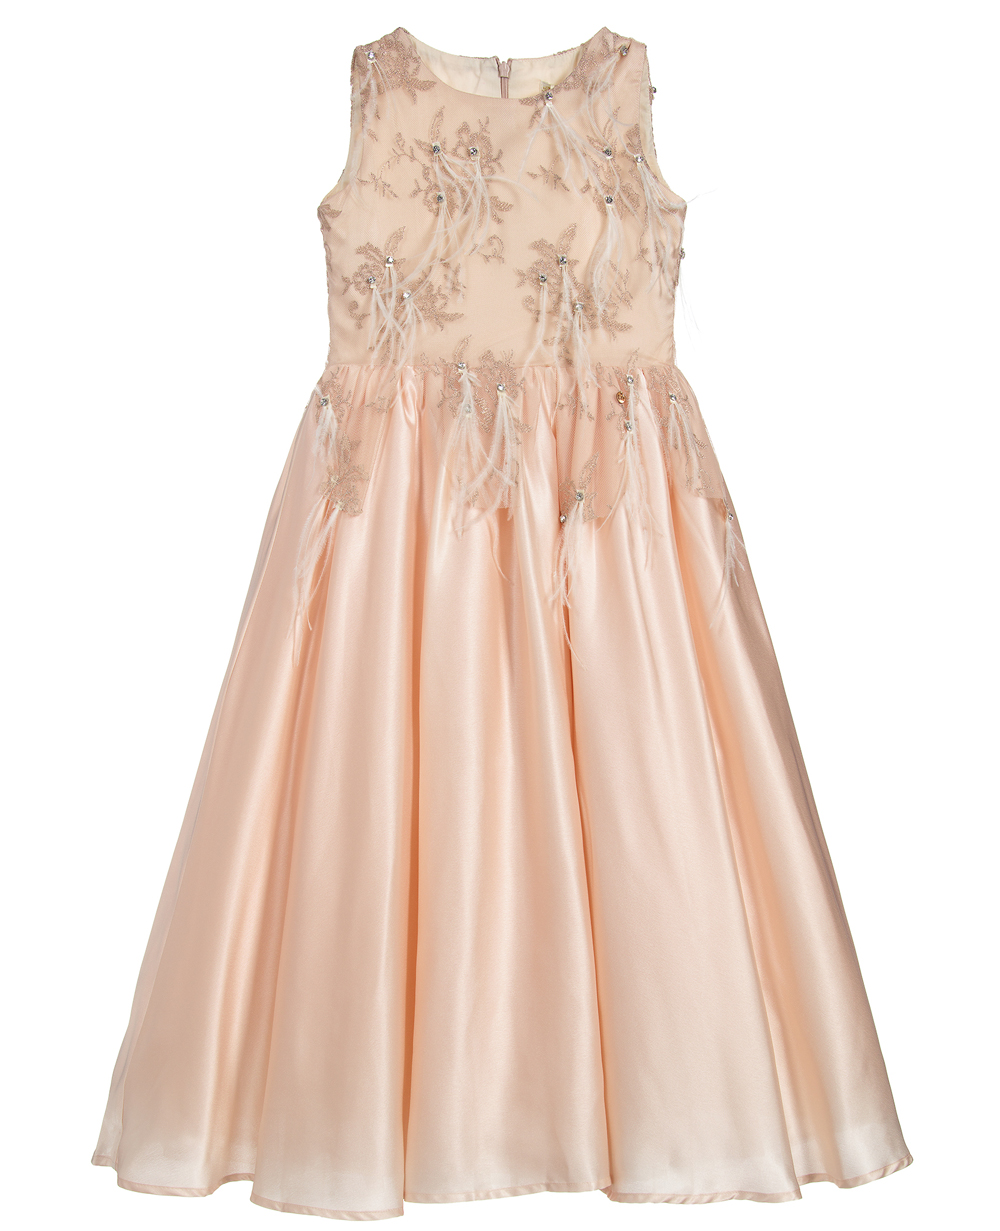 Cream Satin Dress Maxi Dress Sleeveless Lace Dress